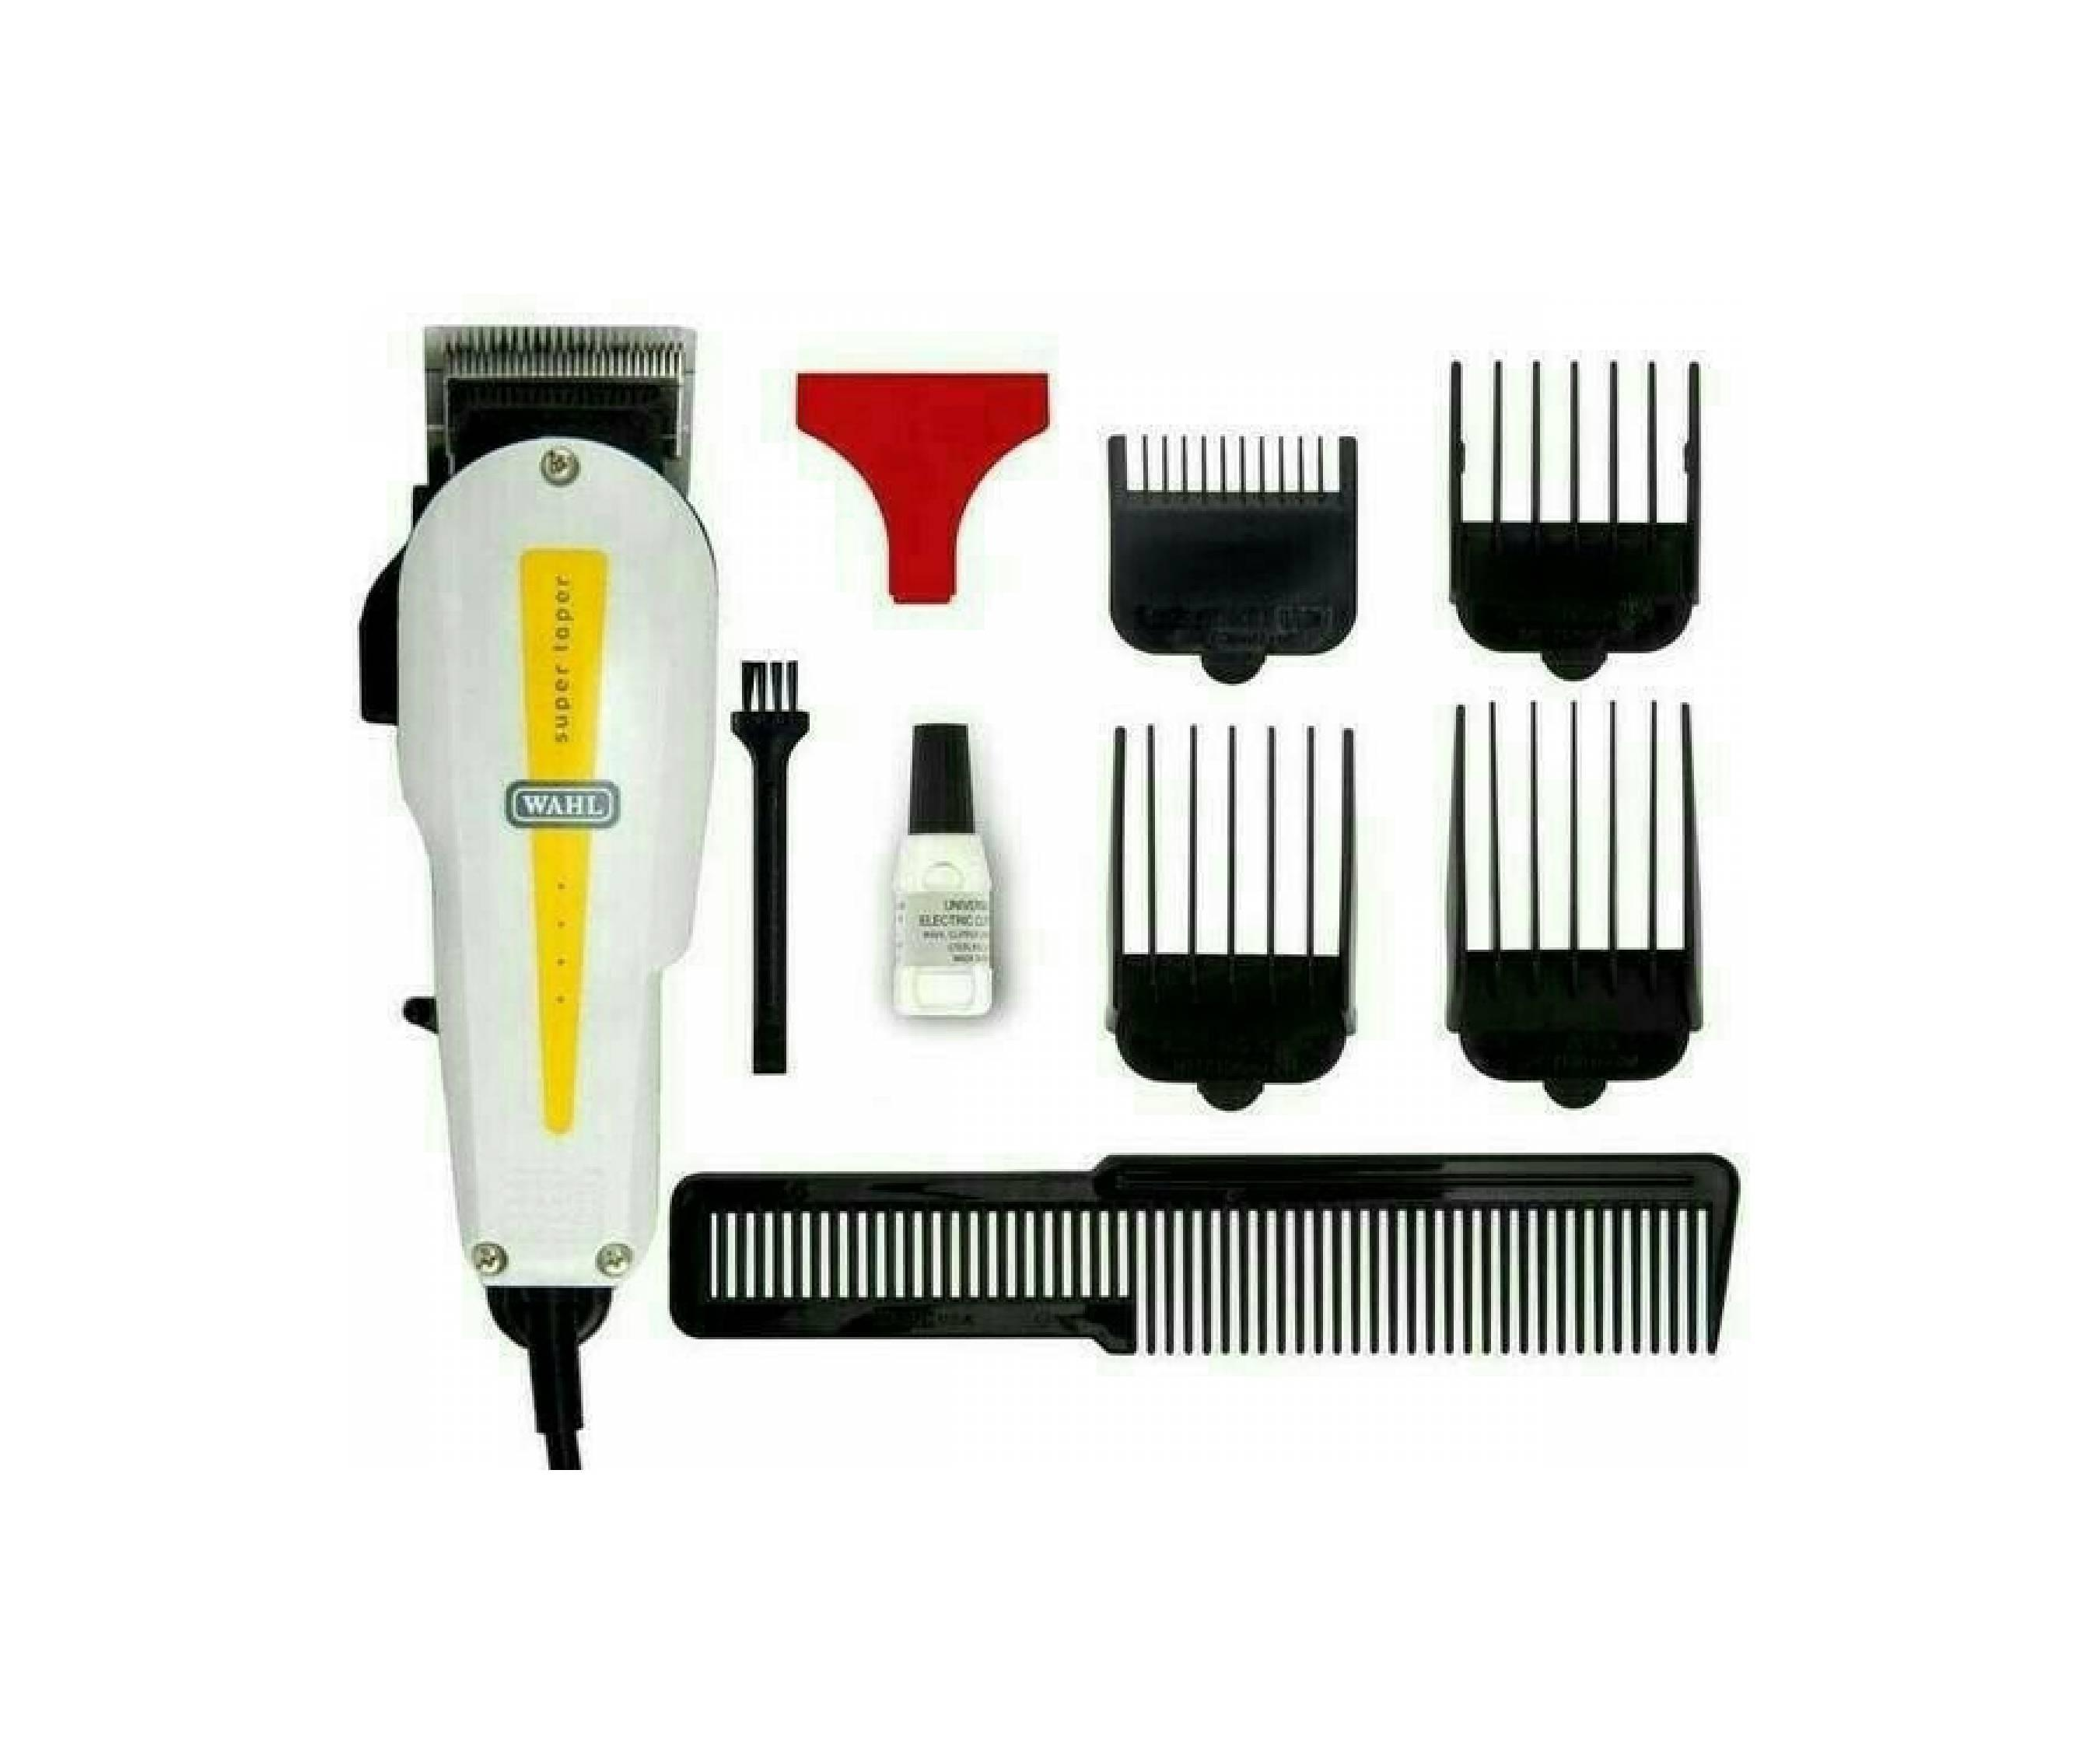 Promo Wahl Alat cukur Rambut Icon Professional Corded Clipper V9000- Hitam/ Gratis Gunting 7 IN 1 - KOMPLITIDR385000. Rp 392.000